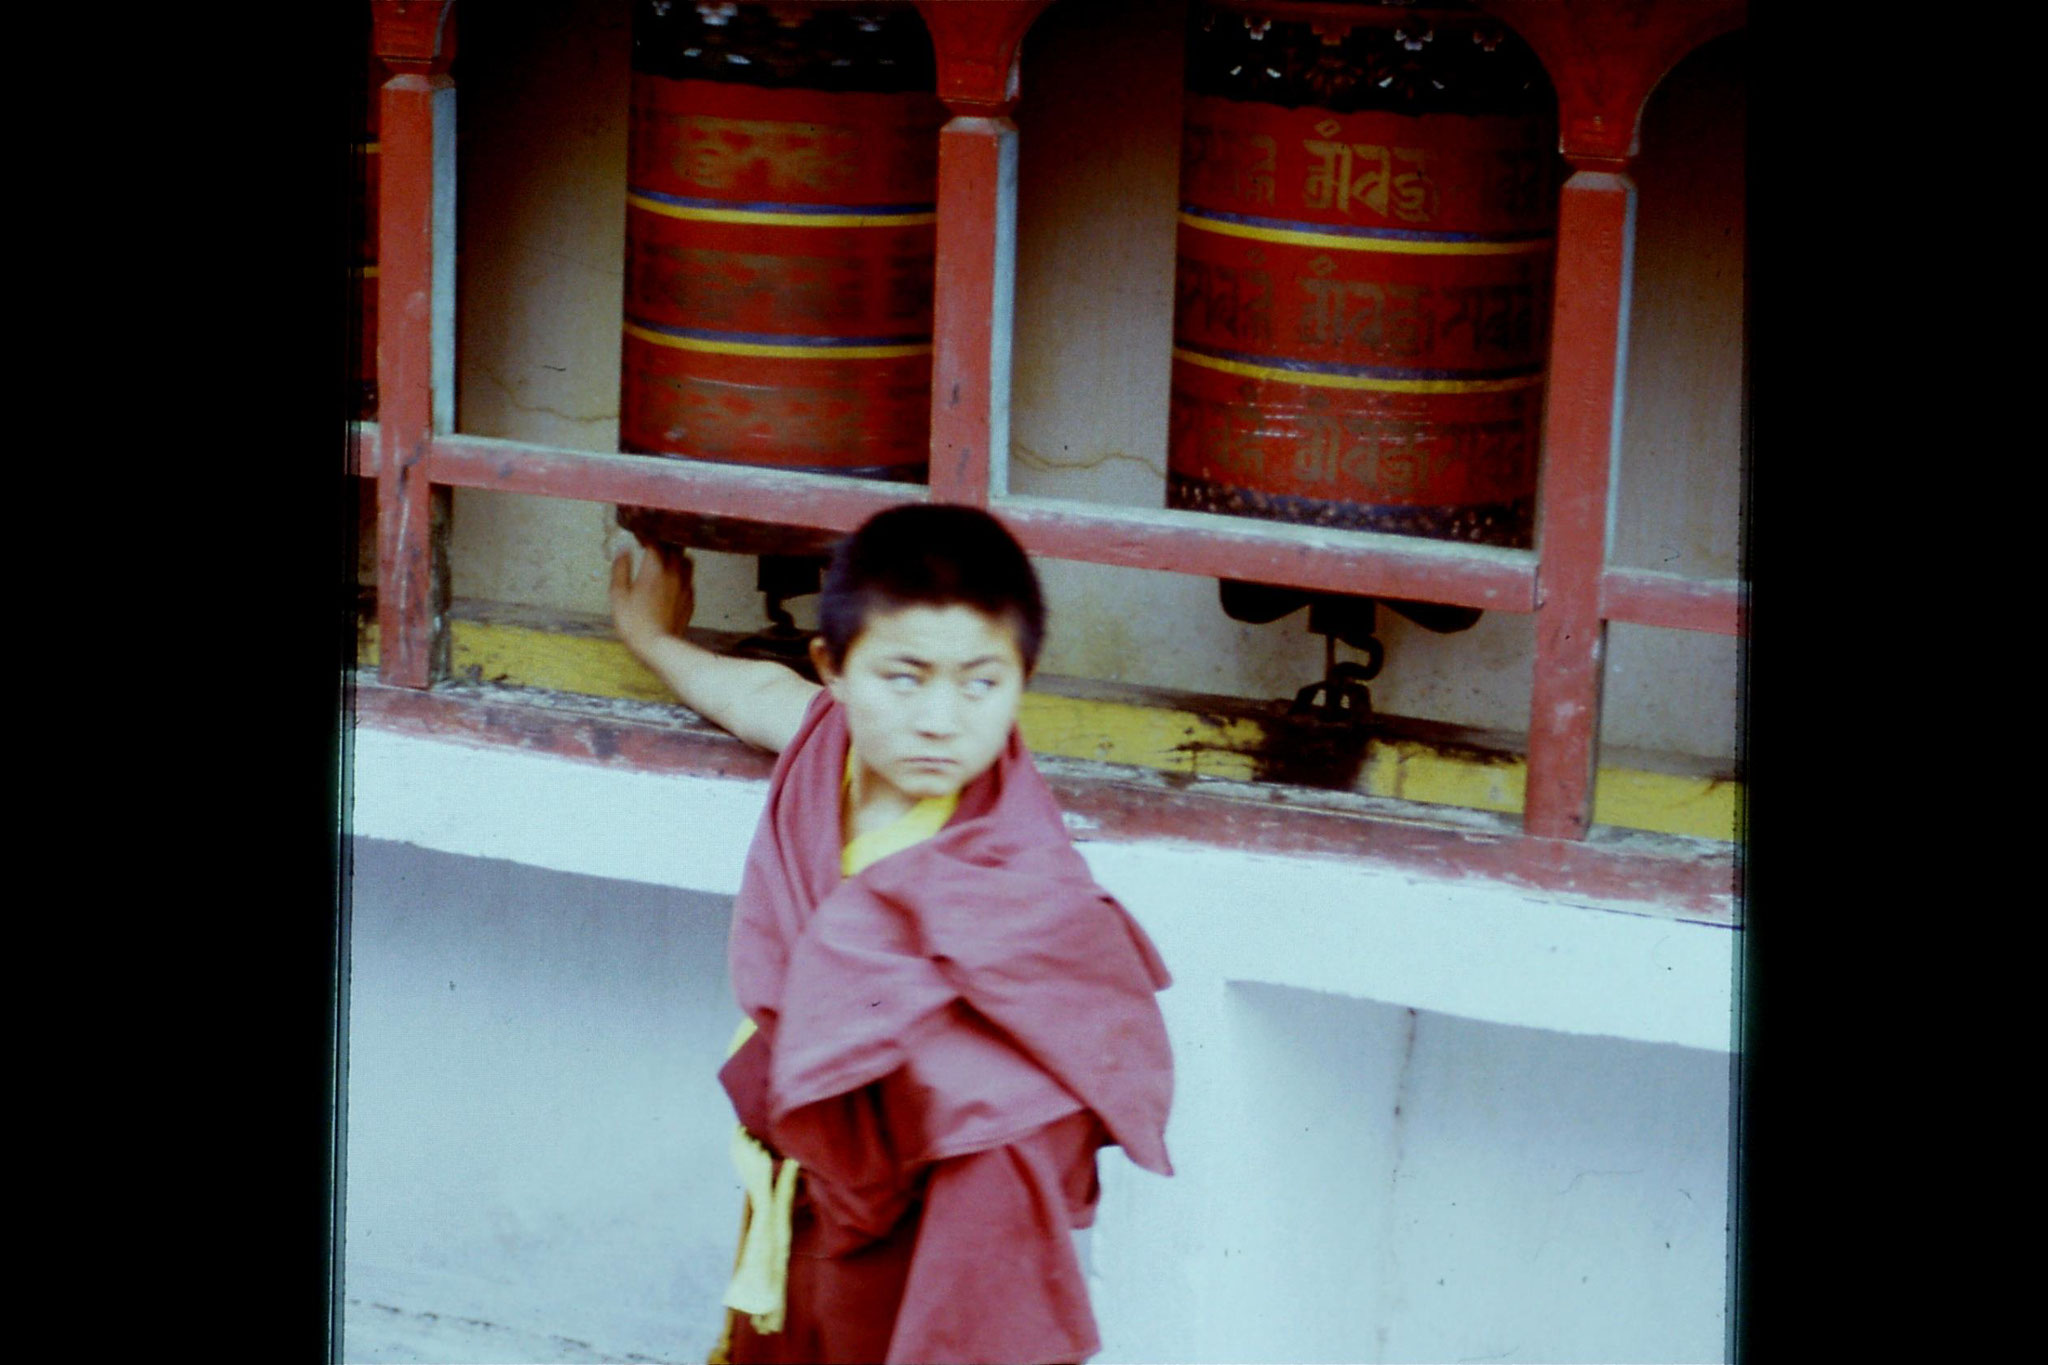 115/13: 23/4/1990 Rumtek - prayer wheel and boy monk